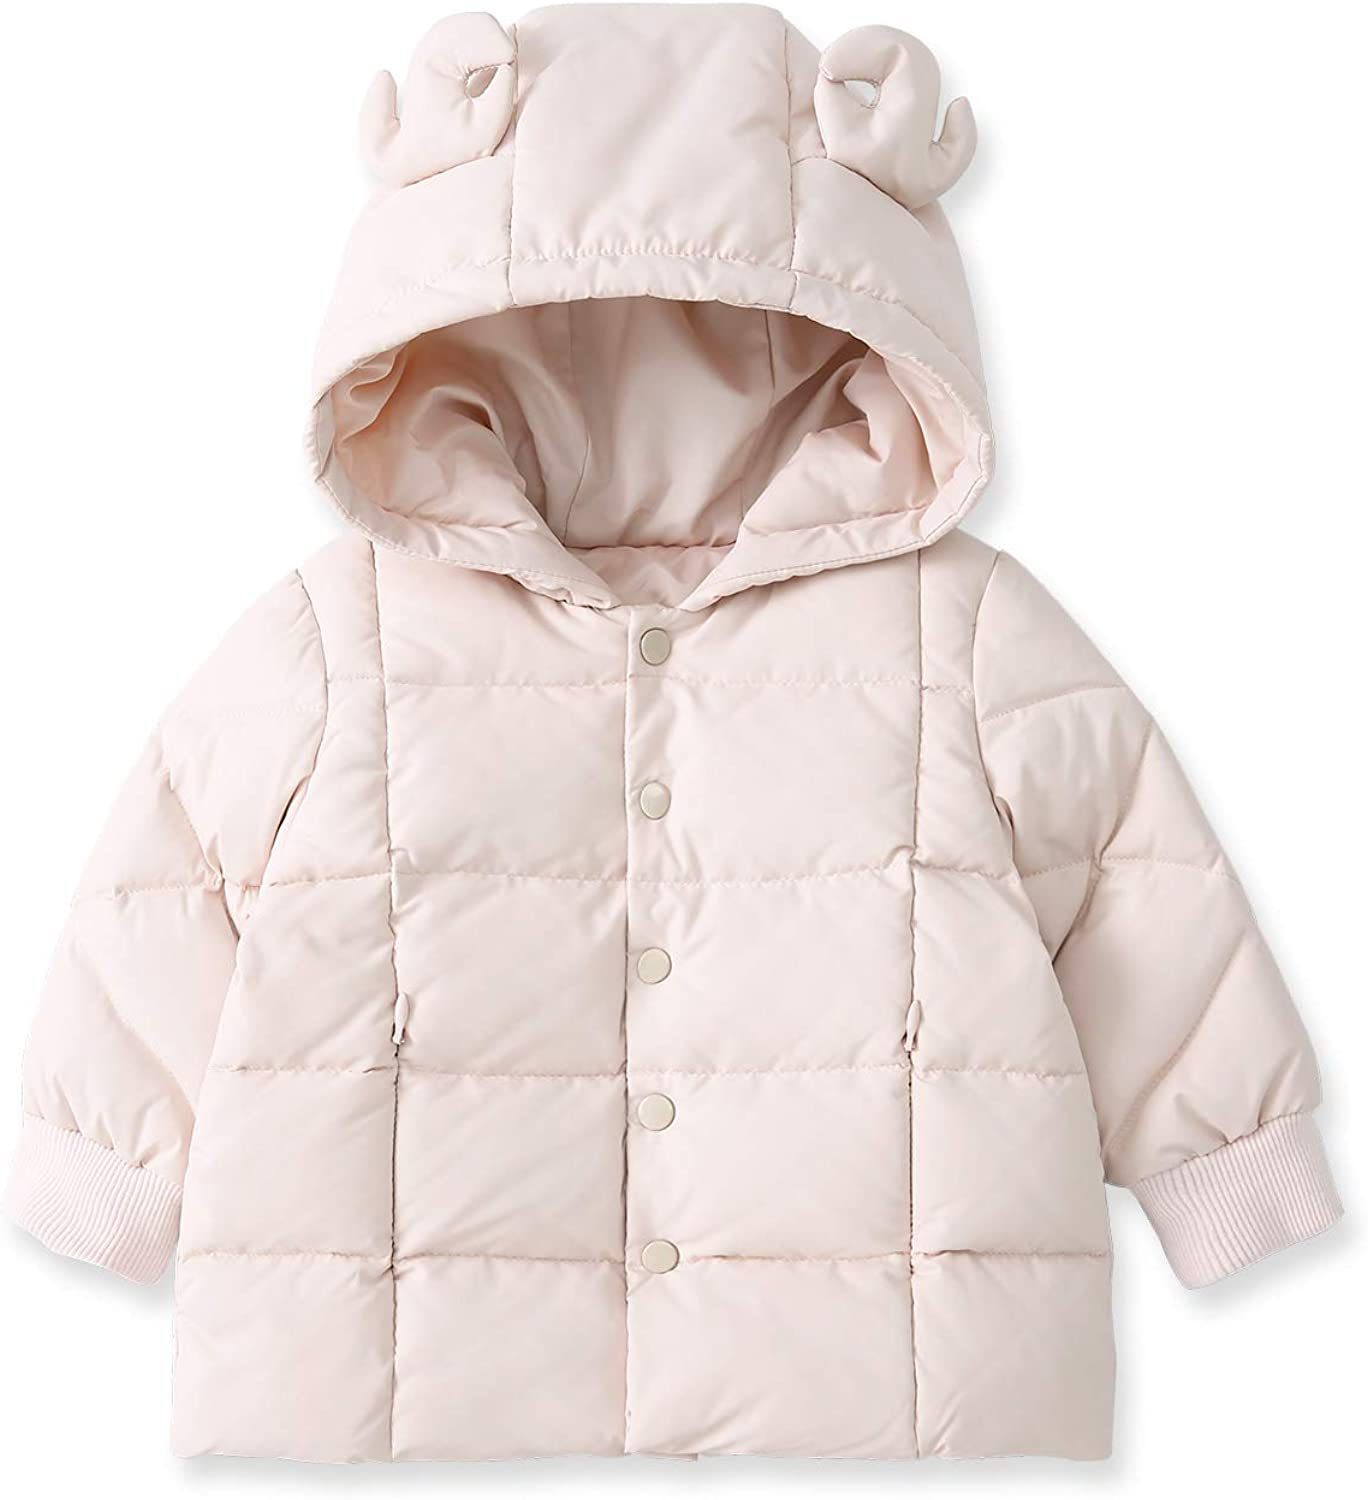 pureborn Baby Toddler Hooded Carseat Cape Poncho Cloak Sale special price Max 49% OFF Ja Fleece